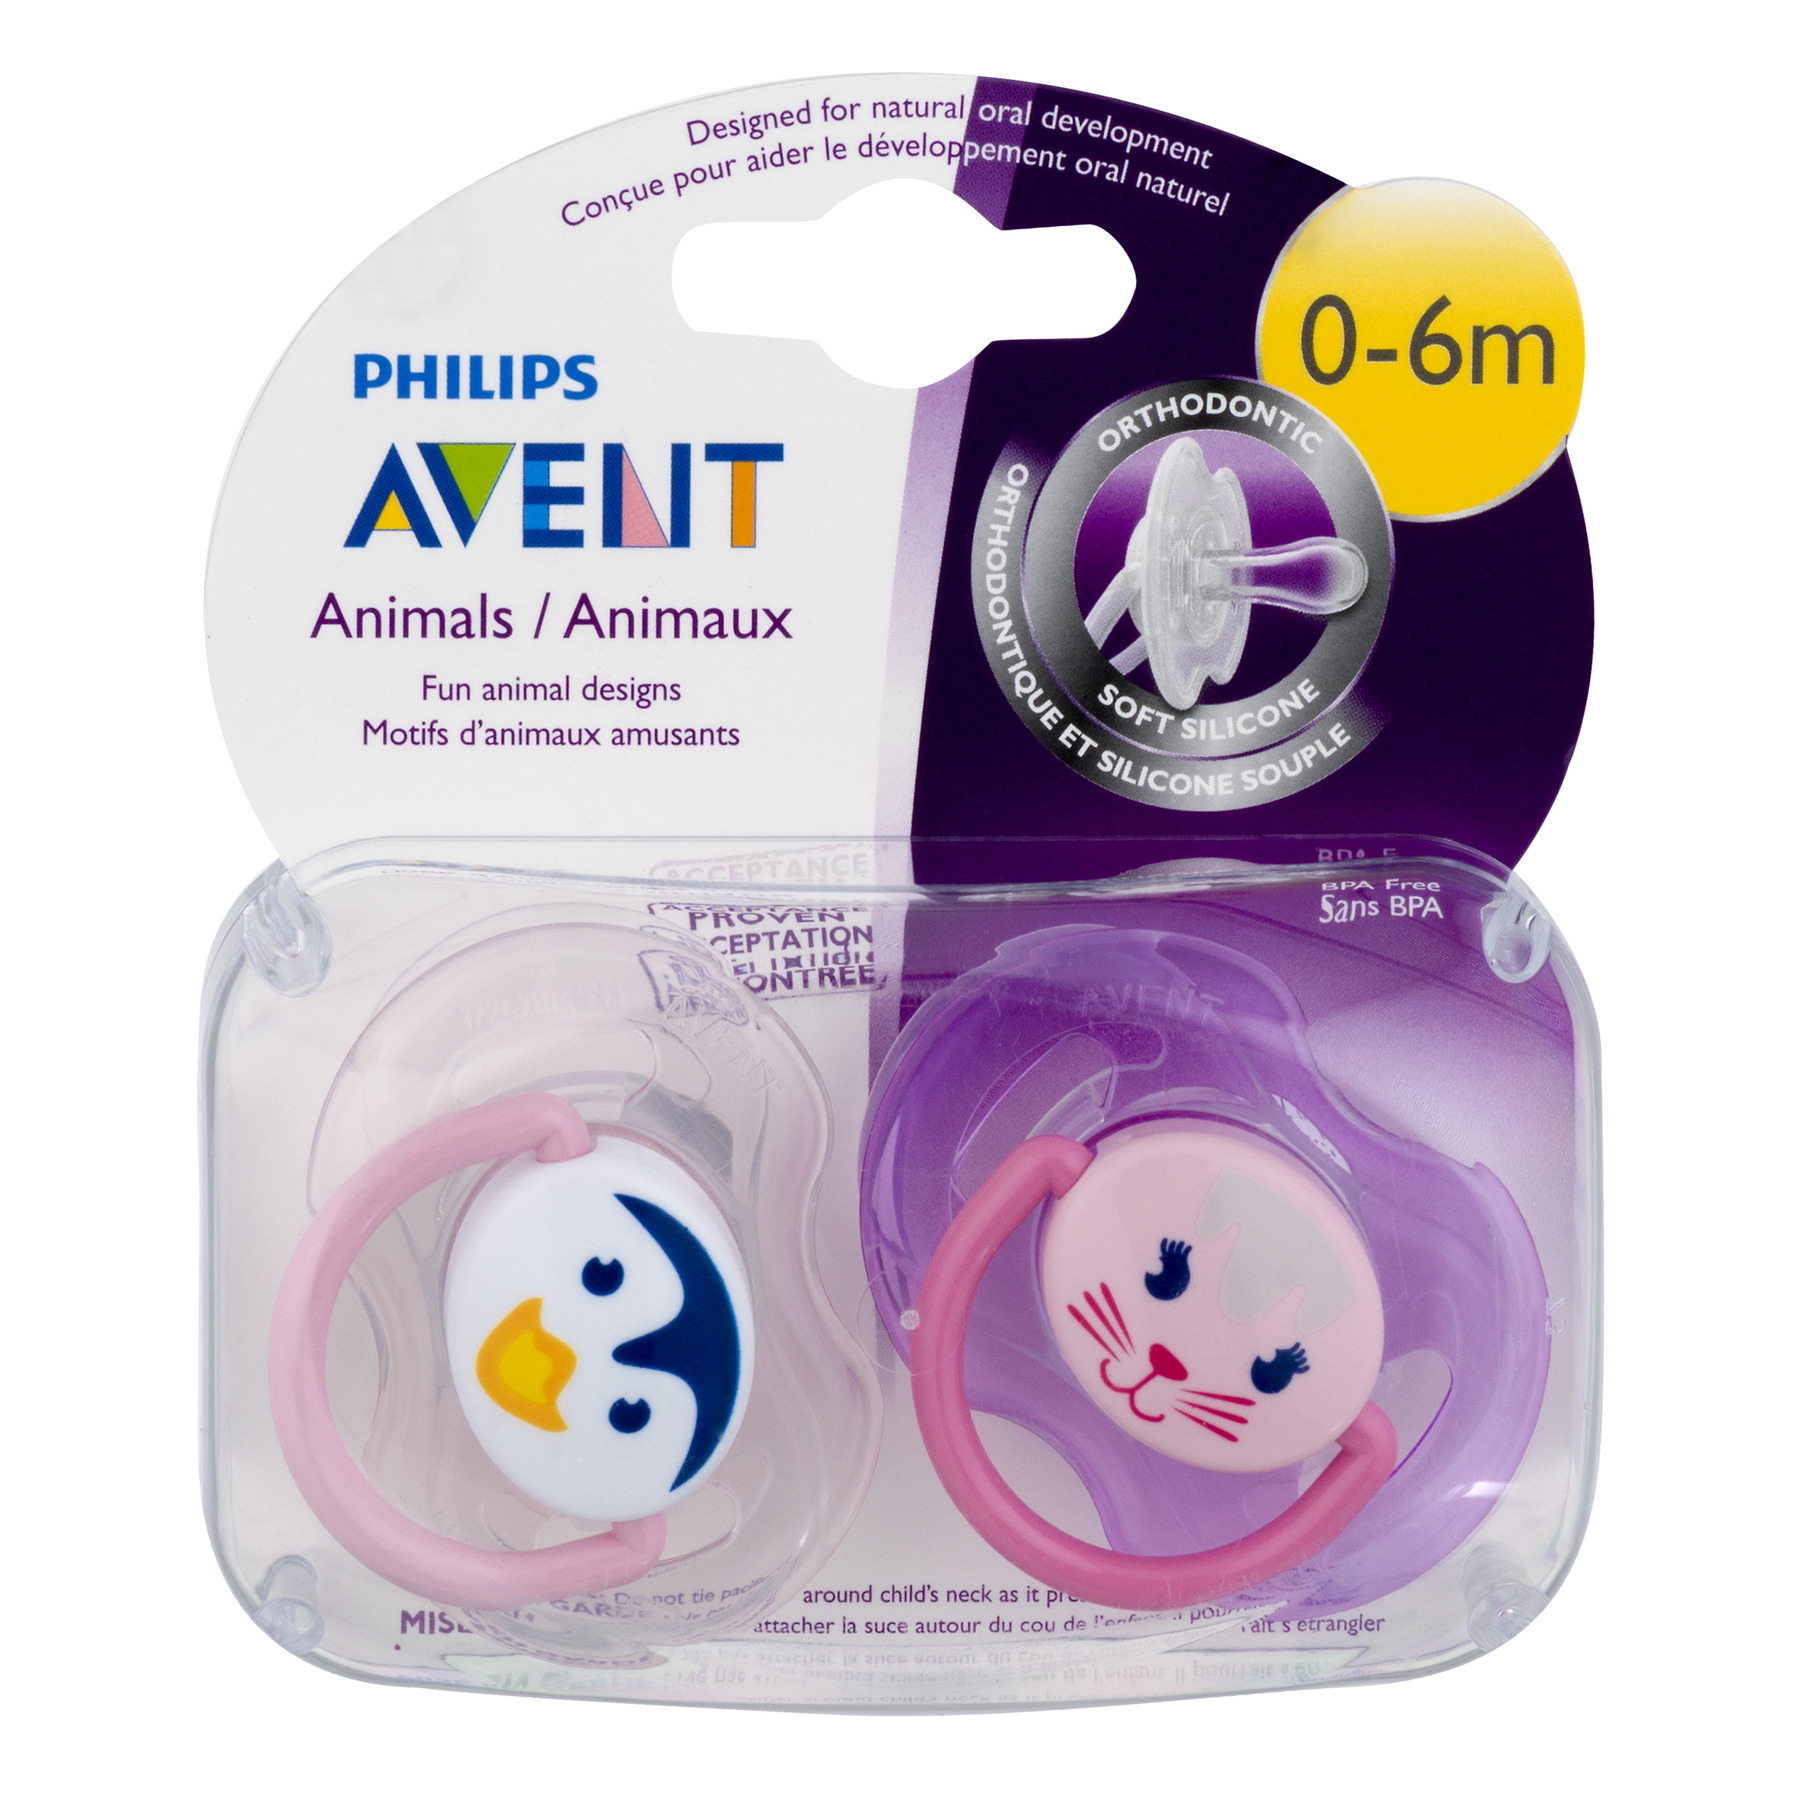 Philips Avent Soother Animal Pacifier, 0-6 Months, Pink/Purple - 2 Counts